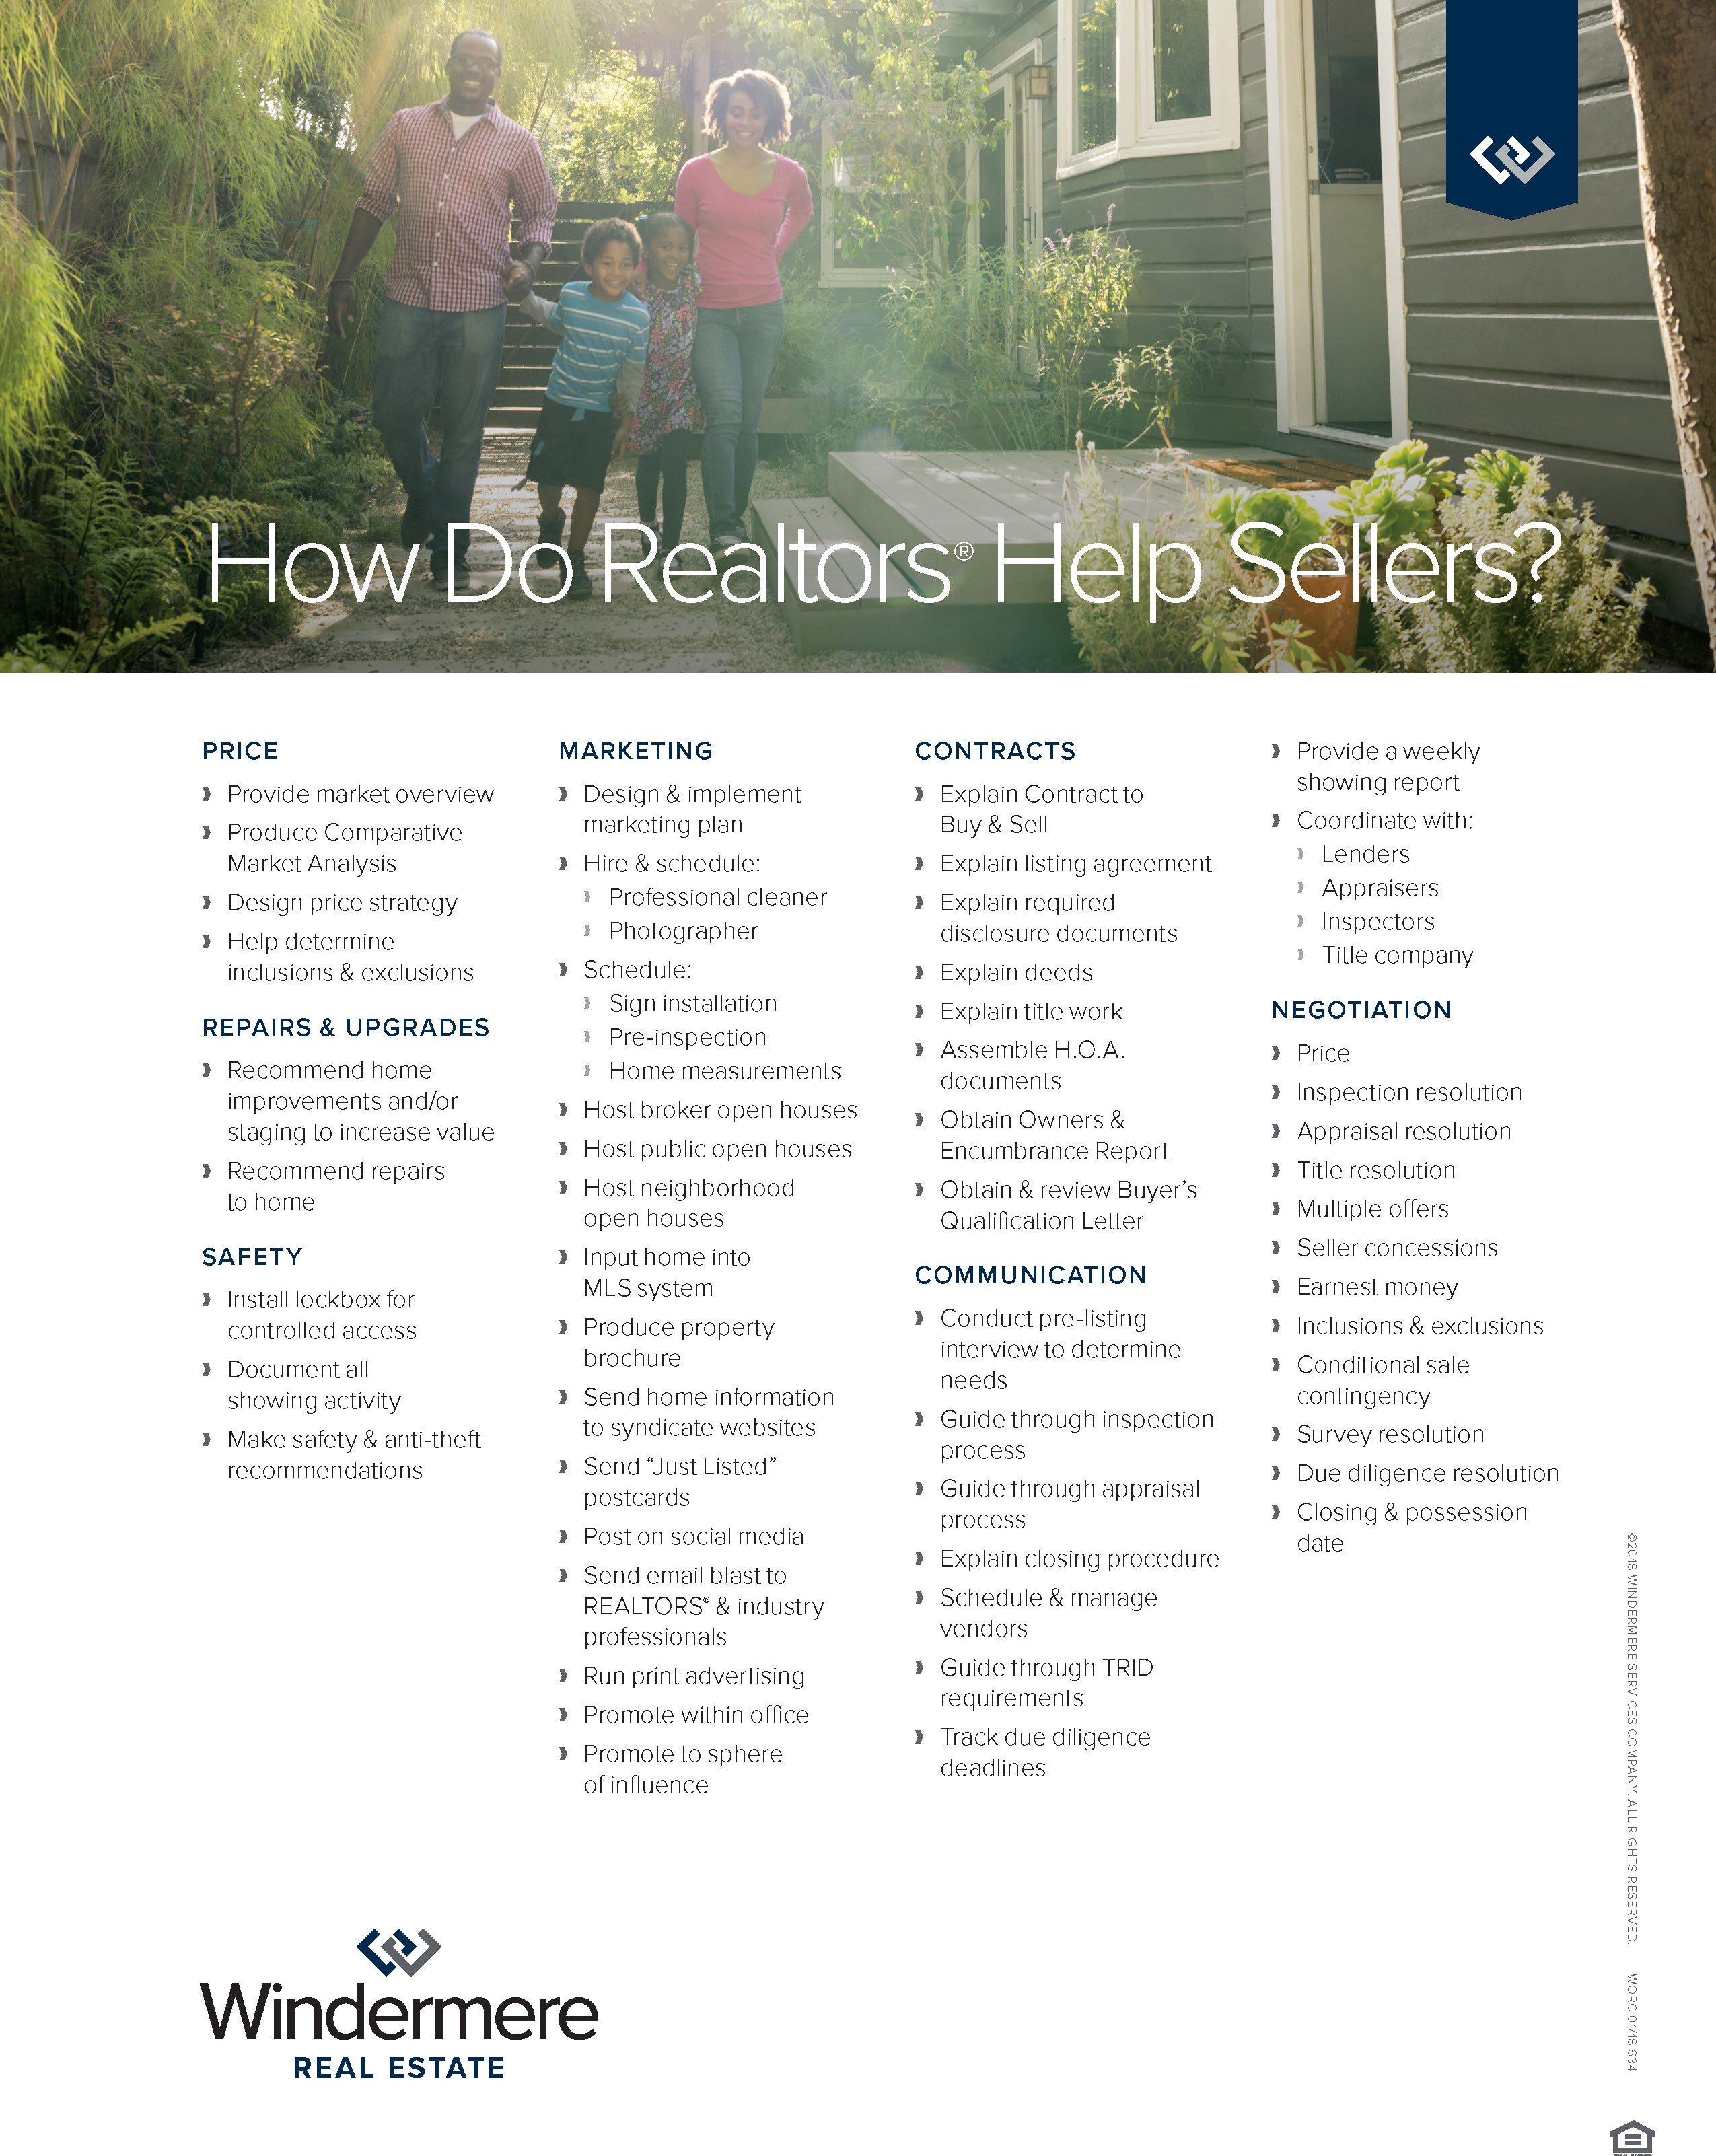 Services Realtors Provide Sellers (2)